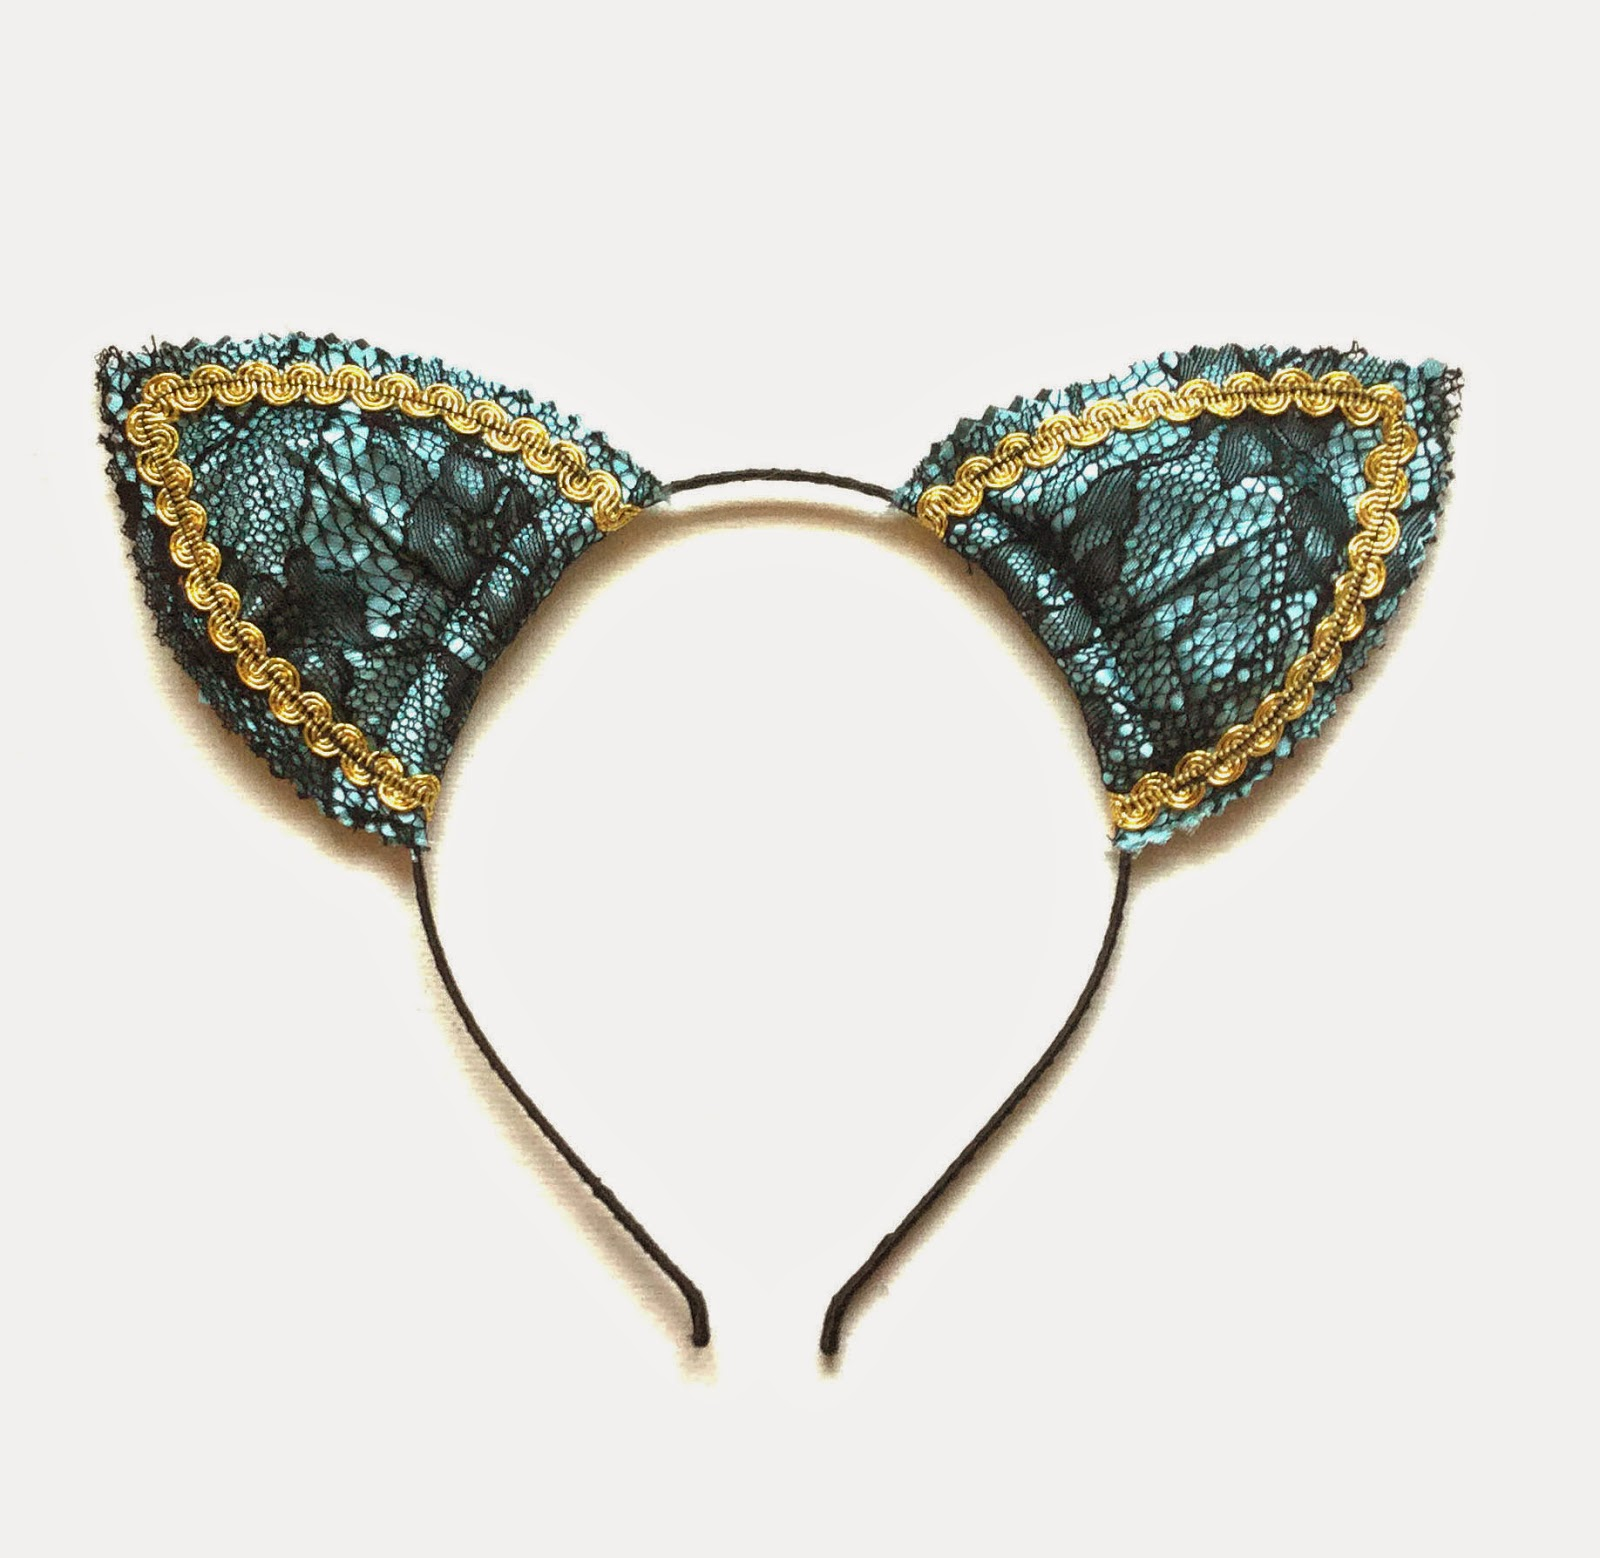 https://www.etsy.com/uk/listing/222486710/cat-ears-headband-breakfast-at-tiffanys?ref=shop_home_active_1